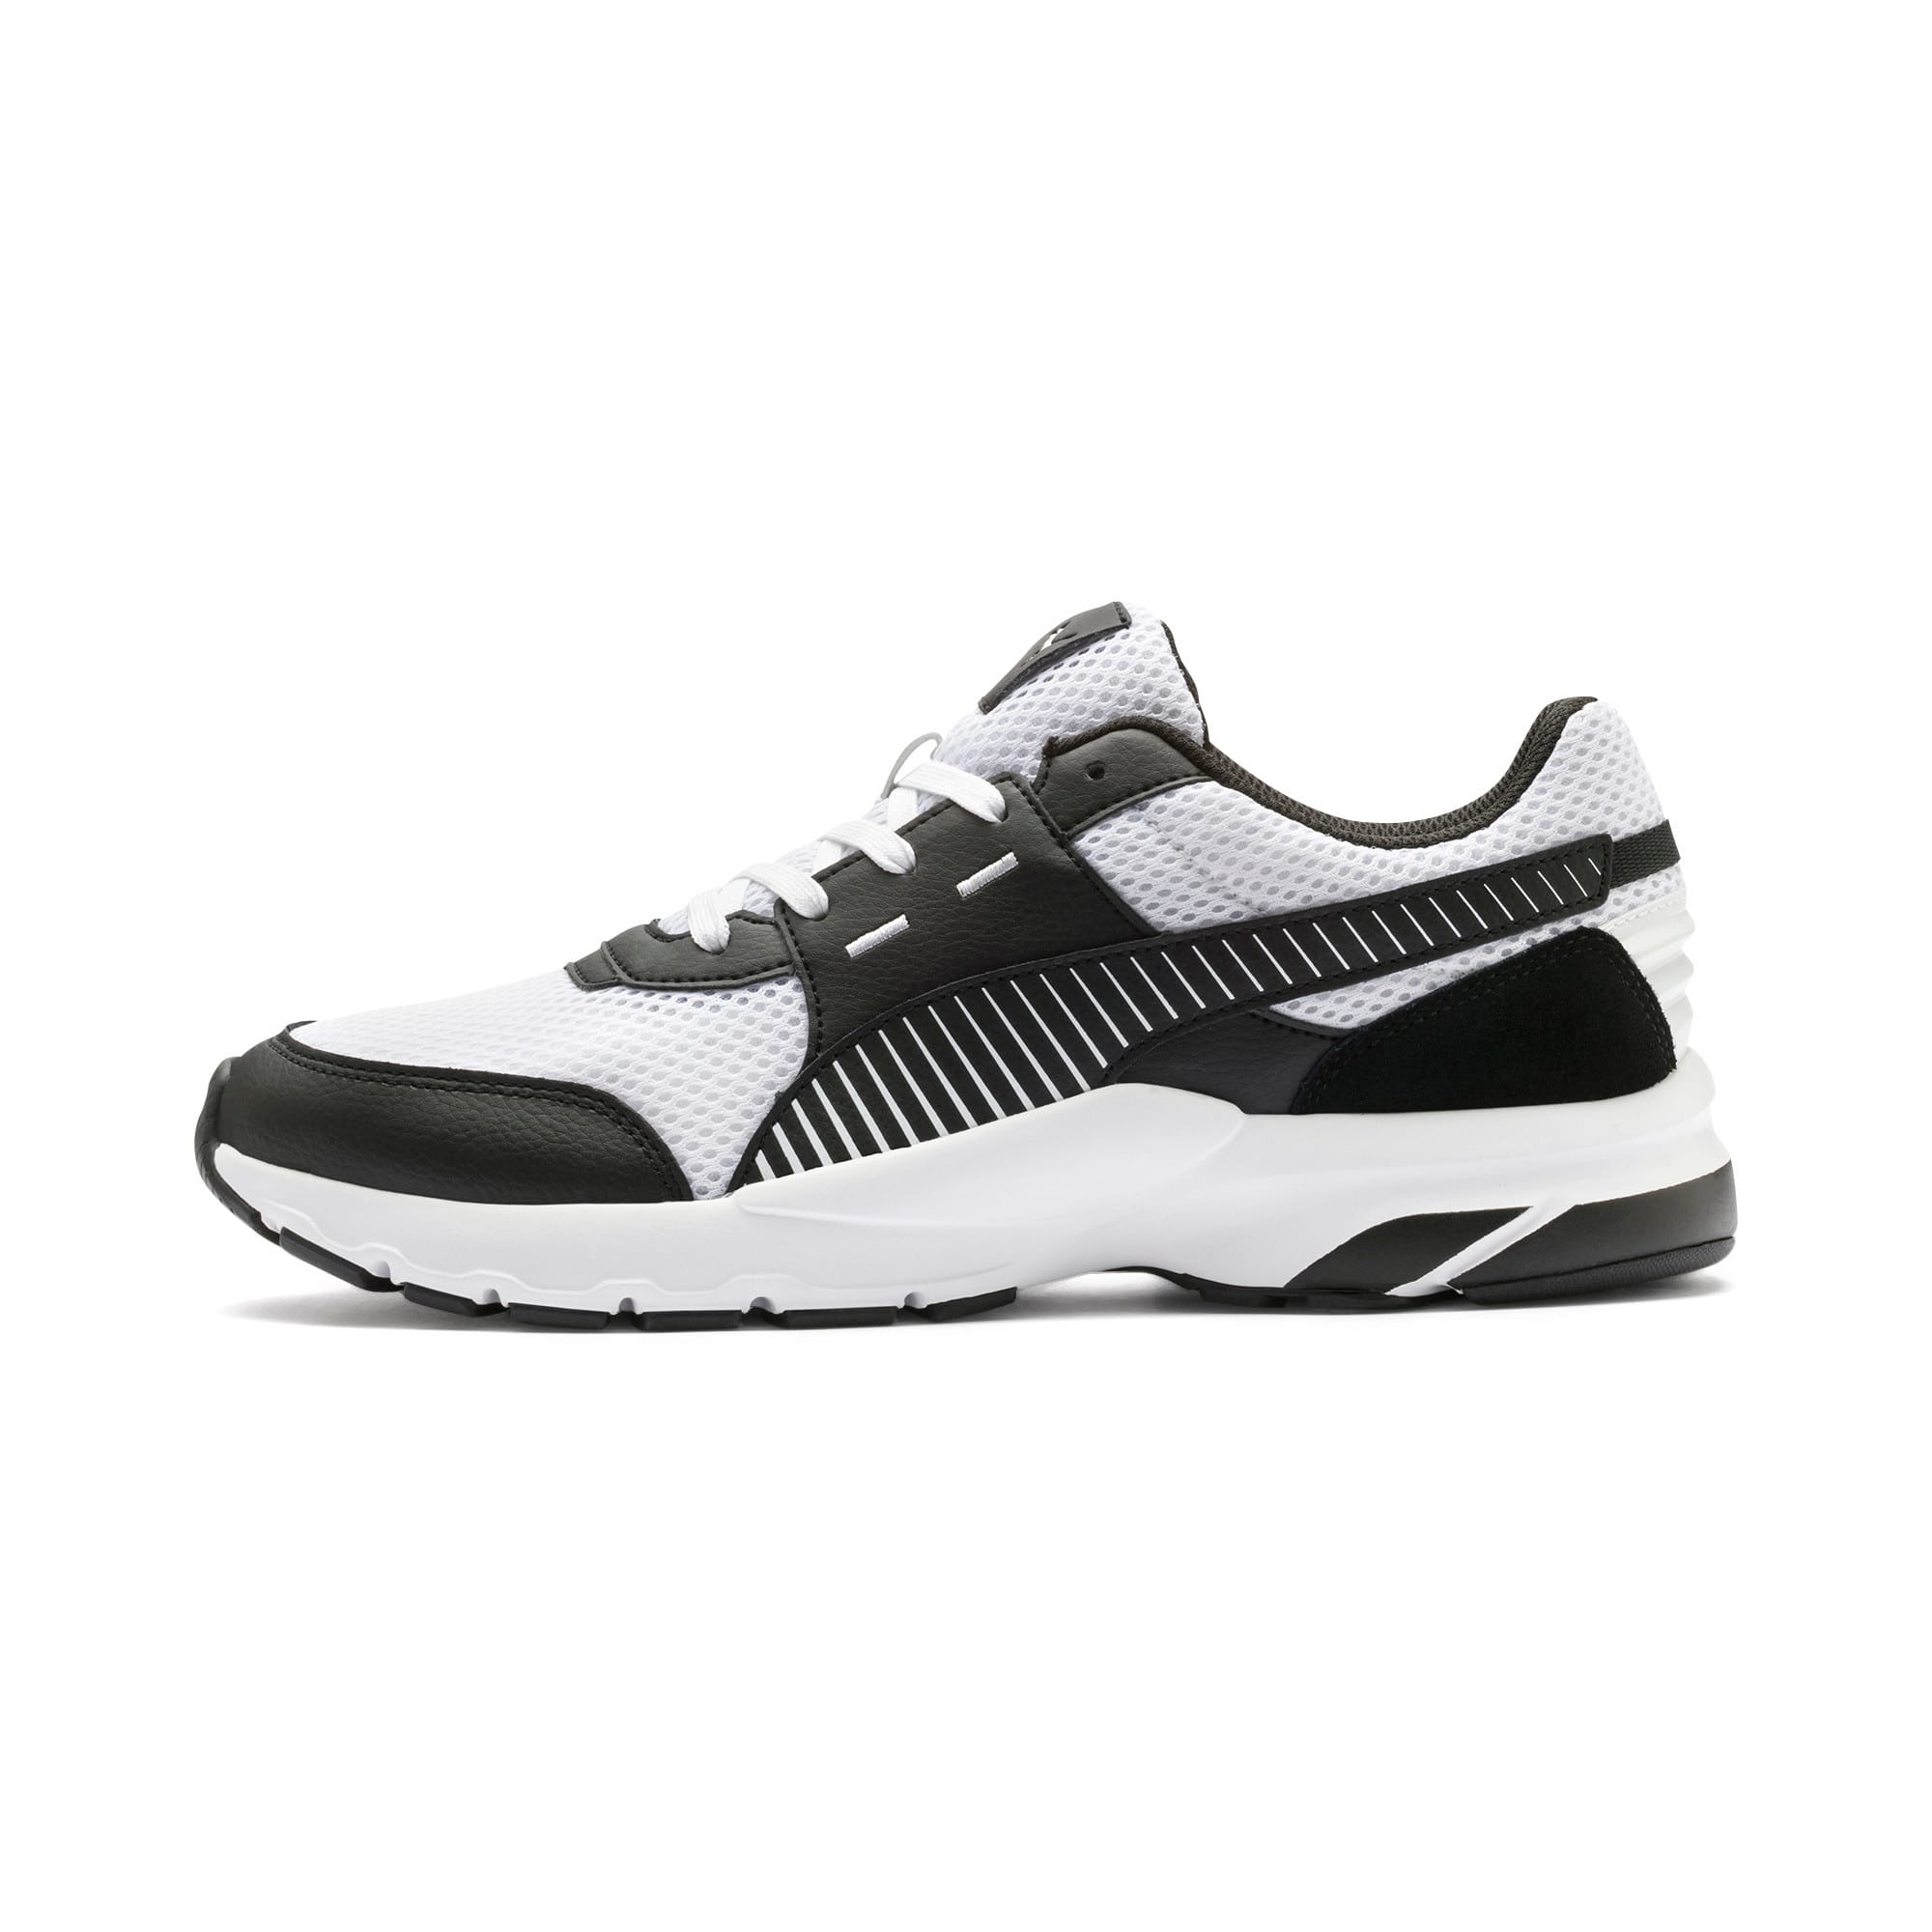 Thumbnail 1 of Future Runner Premium Laufschuhe, Puma White-Puma Black, medium